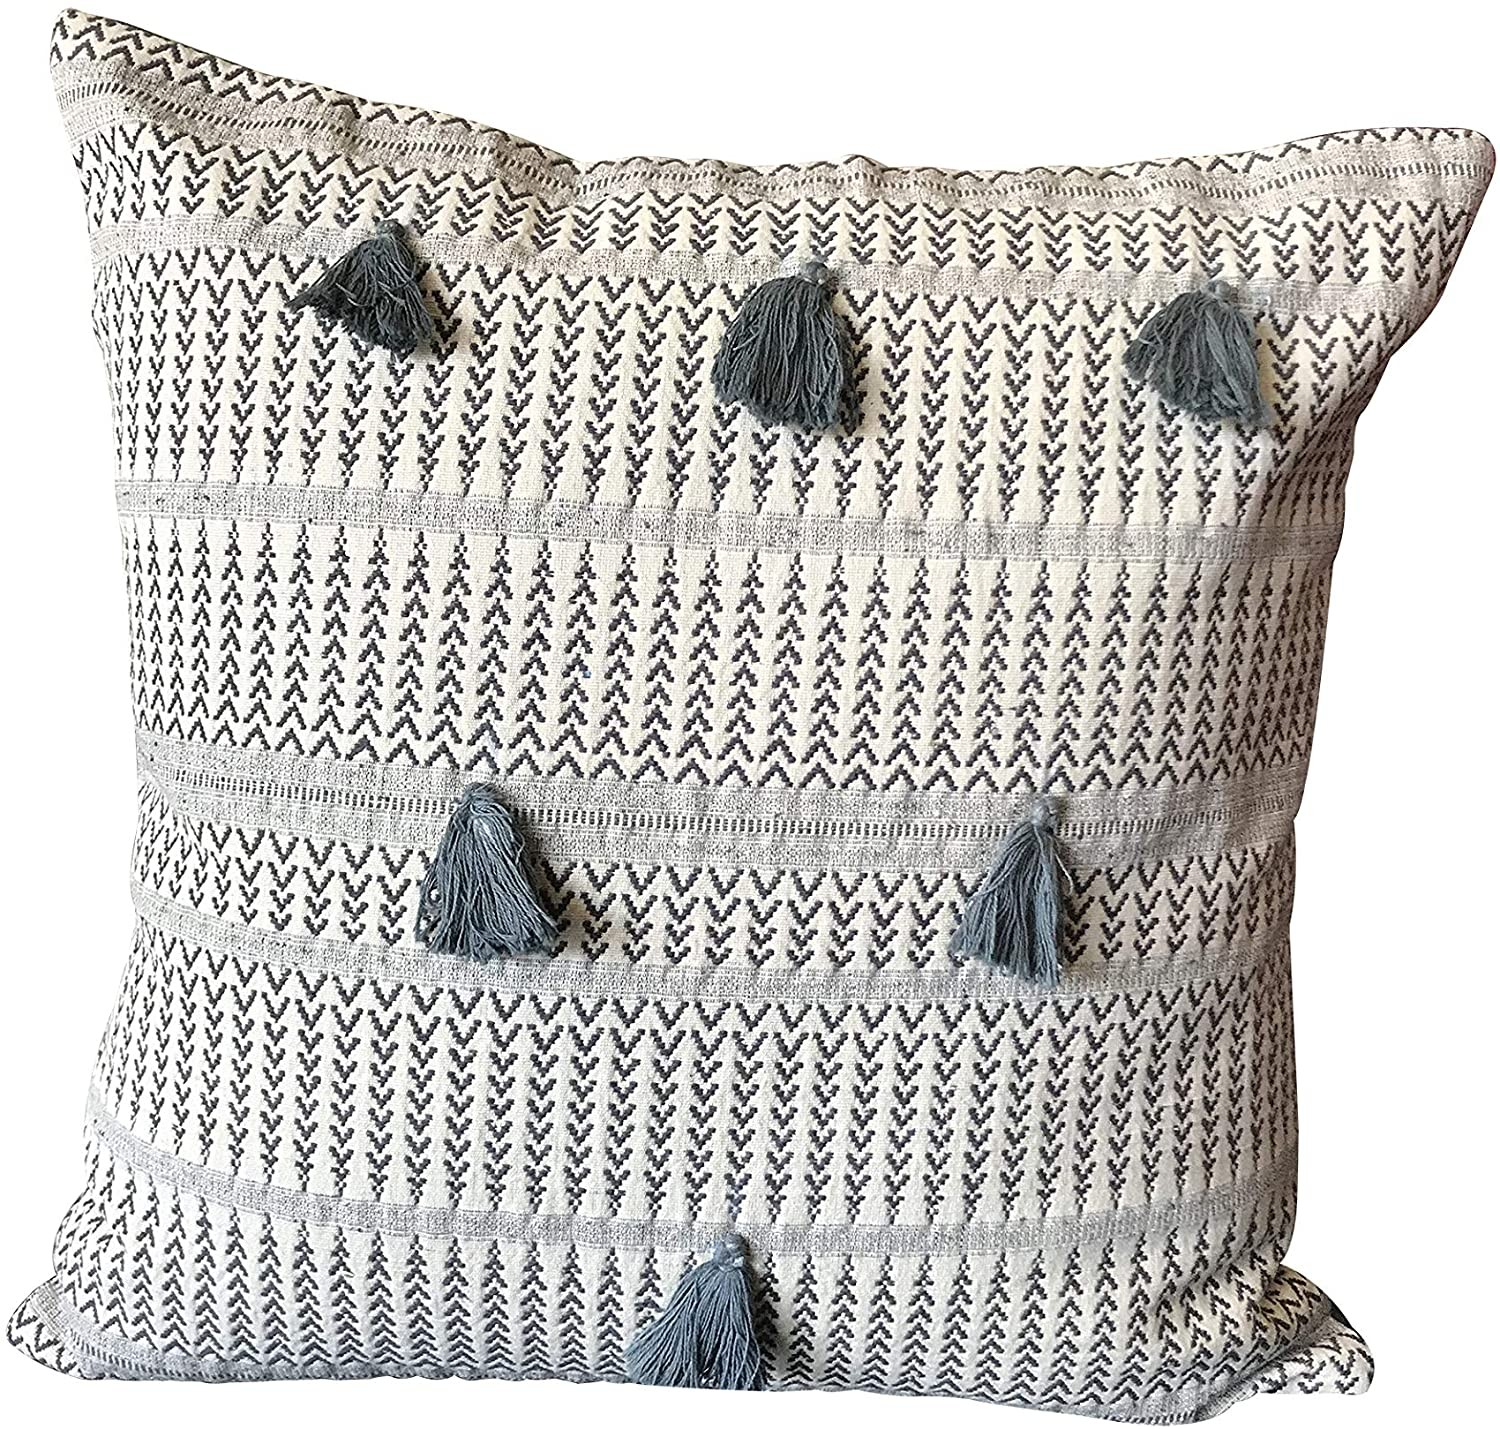 Shop Throw Pillow Cover Tribal Boho Woven Pillowcase